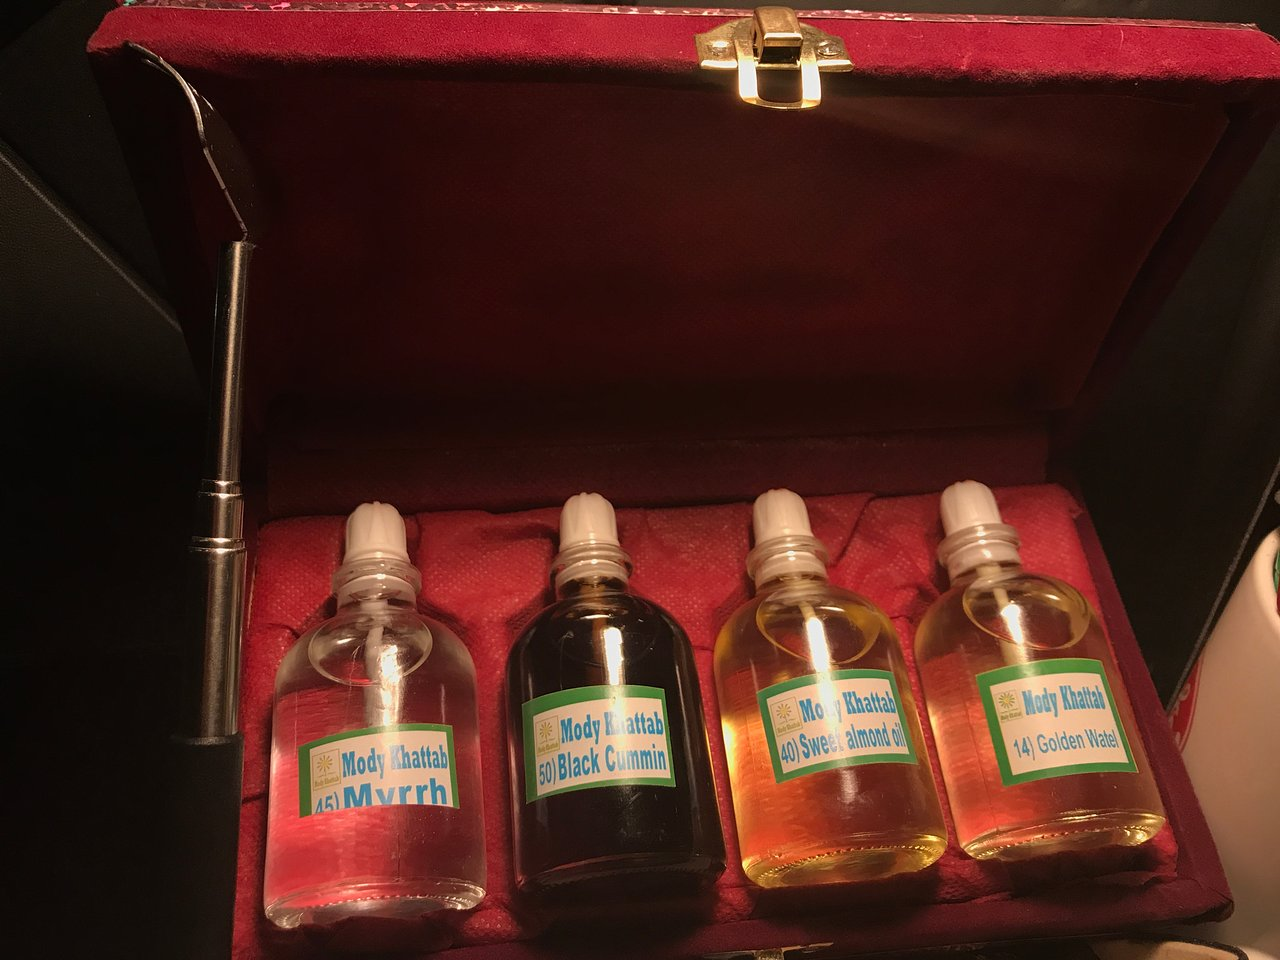 Storage fabrication natural perfumes and oils in souvenir cases